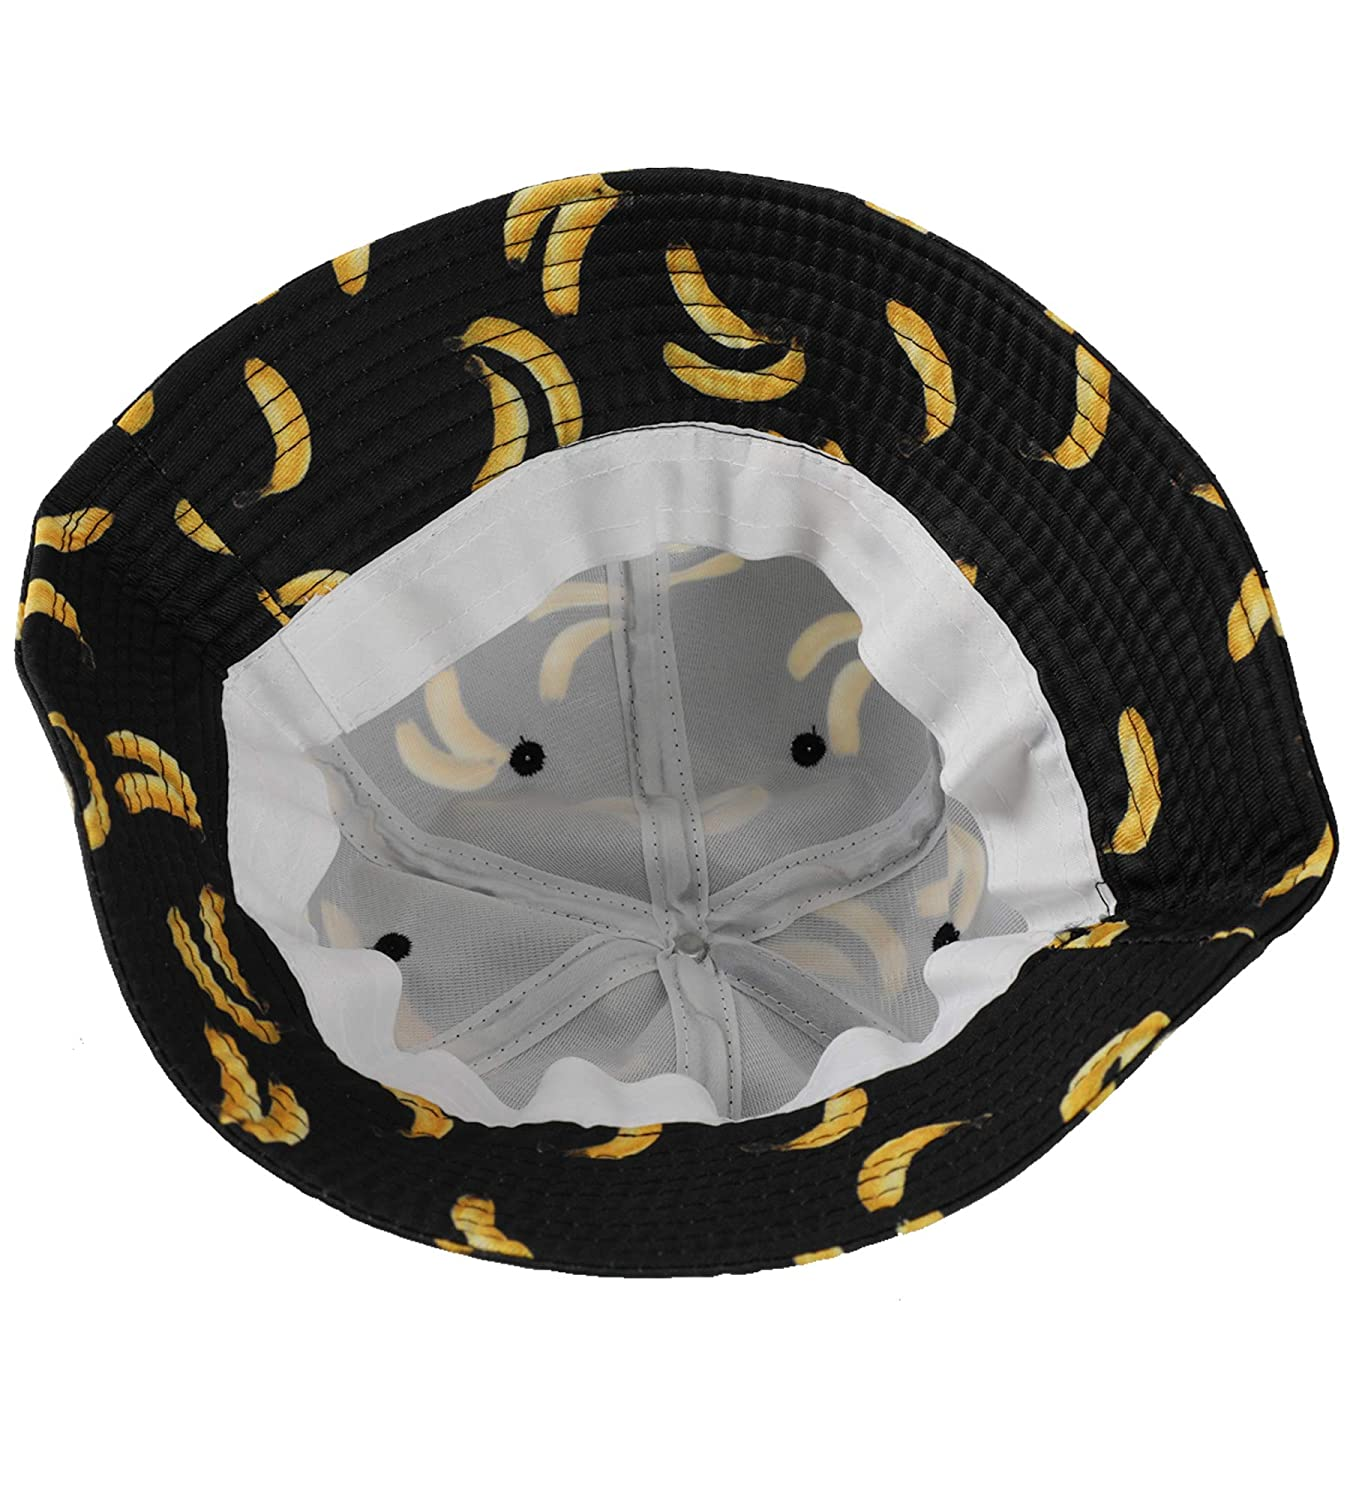 Amazon.com  EUPHIE YING Cotton Headwear Fruit Pattern Fashion Bucket Hat  Fisherman Cap Summer Packable Sun Hat  Clothing 32a27e0d54d0